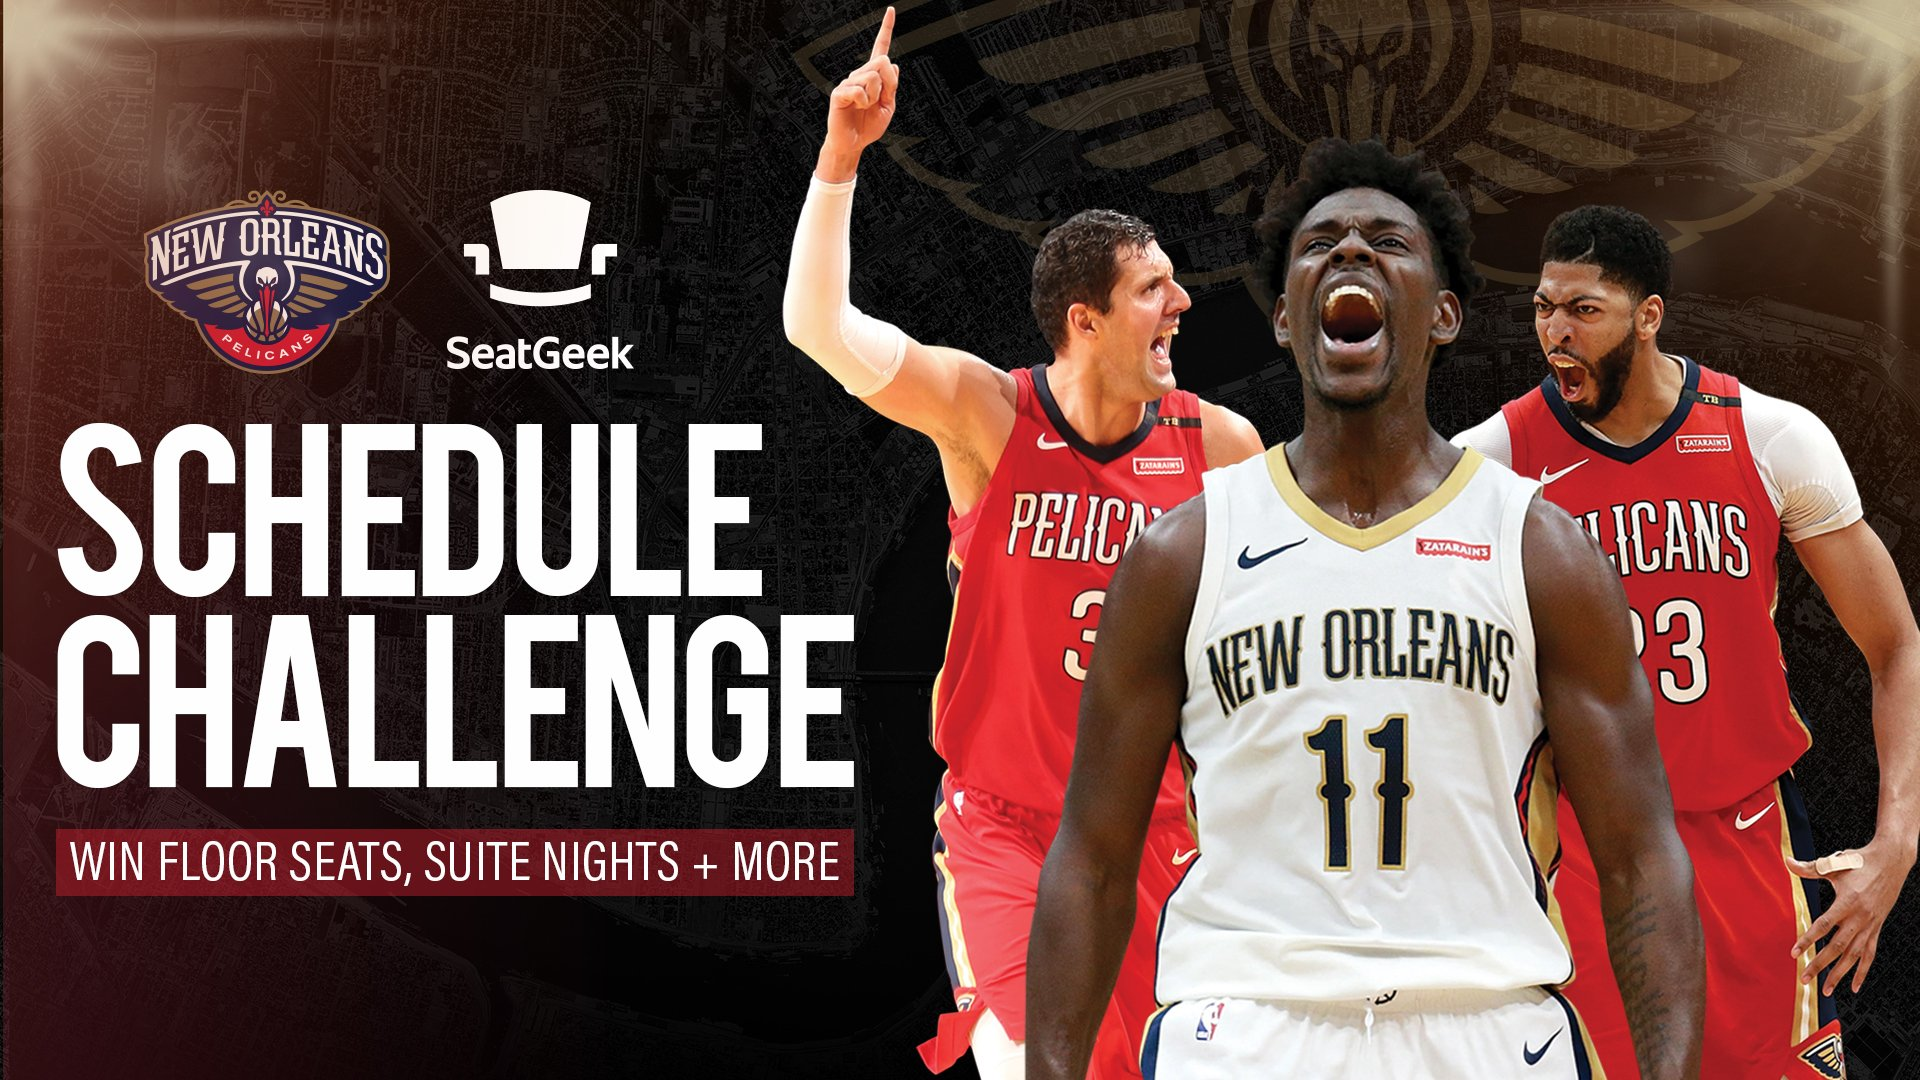 New Orleans Pelicans On Twitter Last Day To Enter All